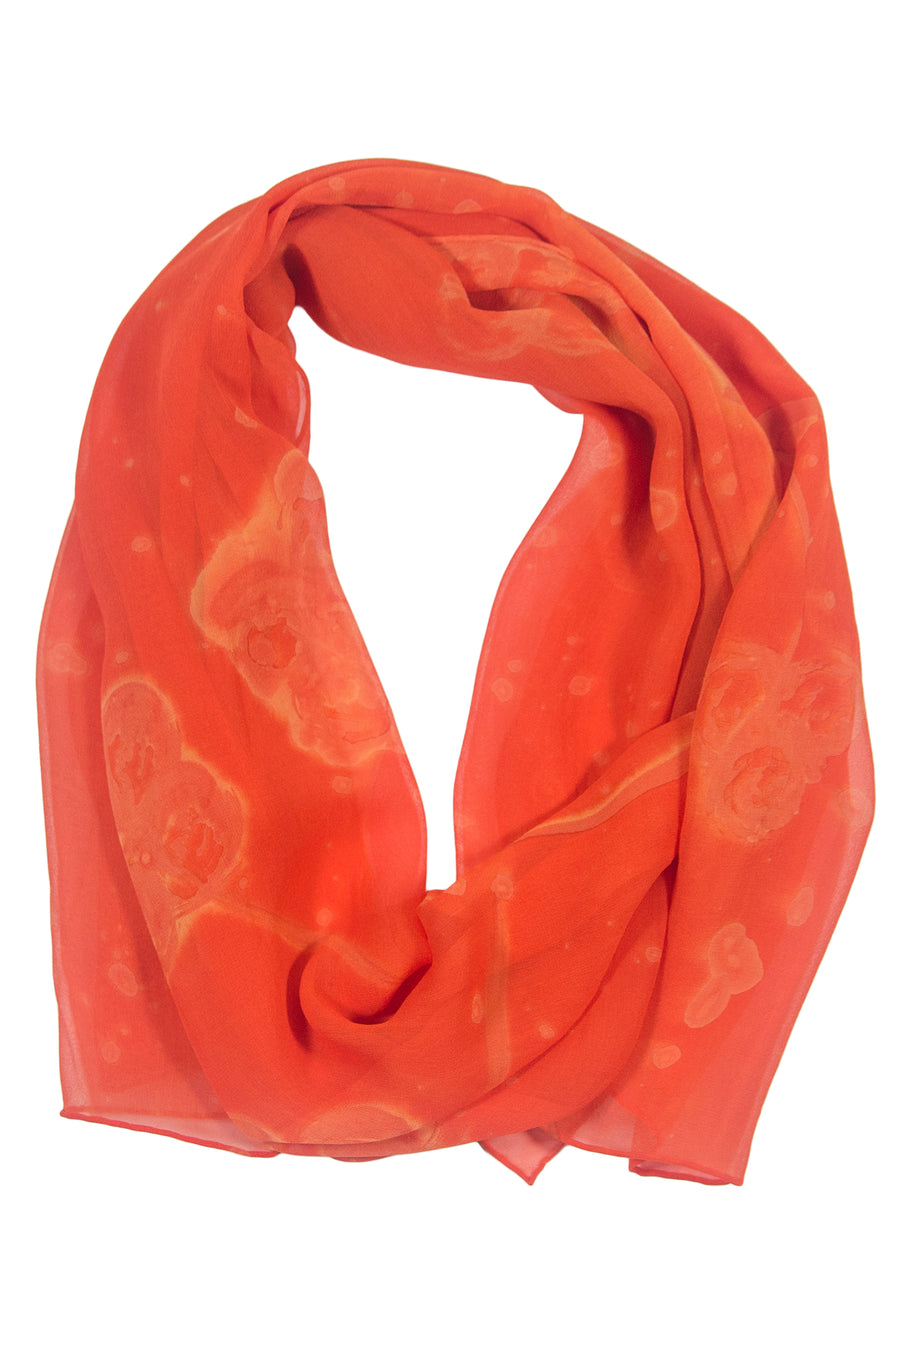 Tangerine Sophisticate - Women's Silk Hand Painted Oblong Scarf - TexereSilk